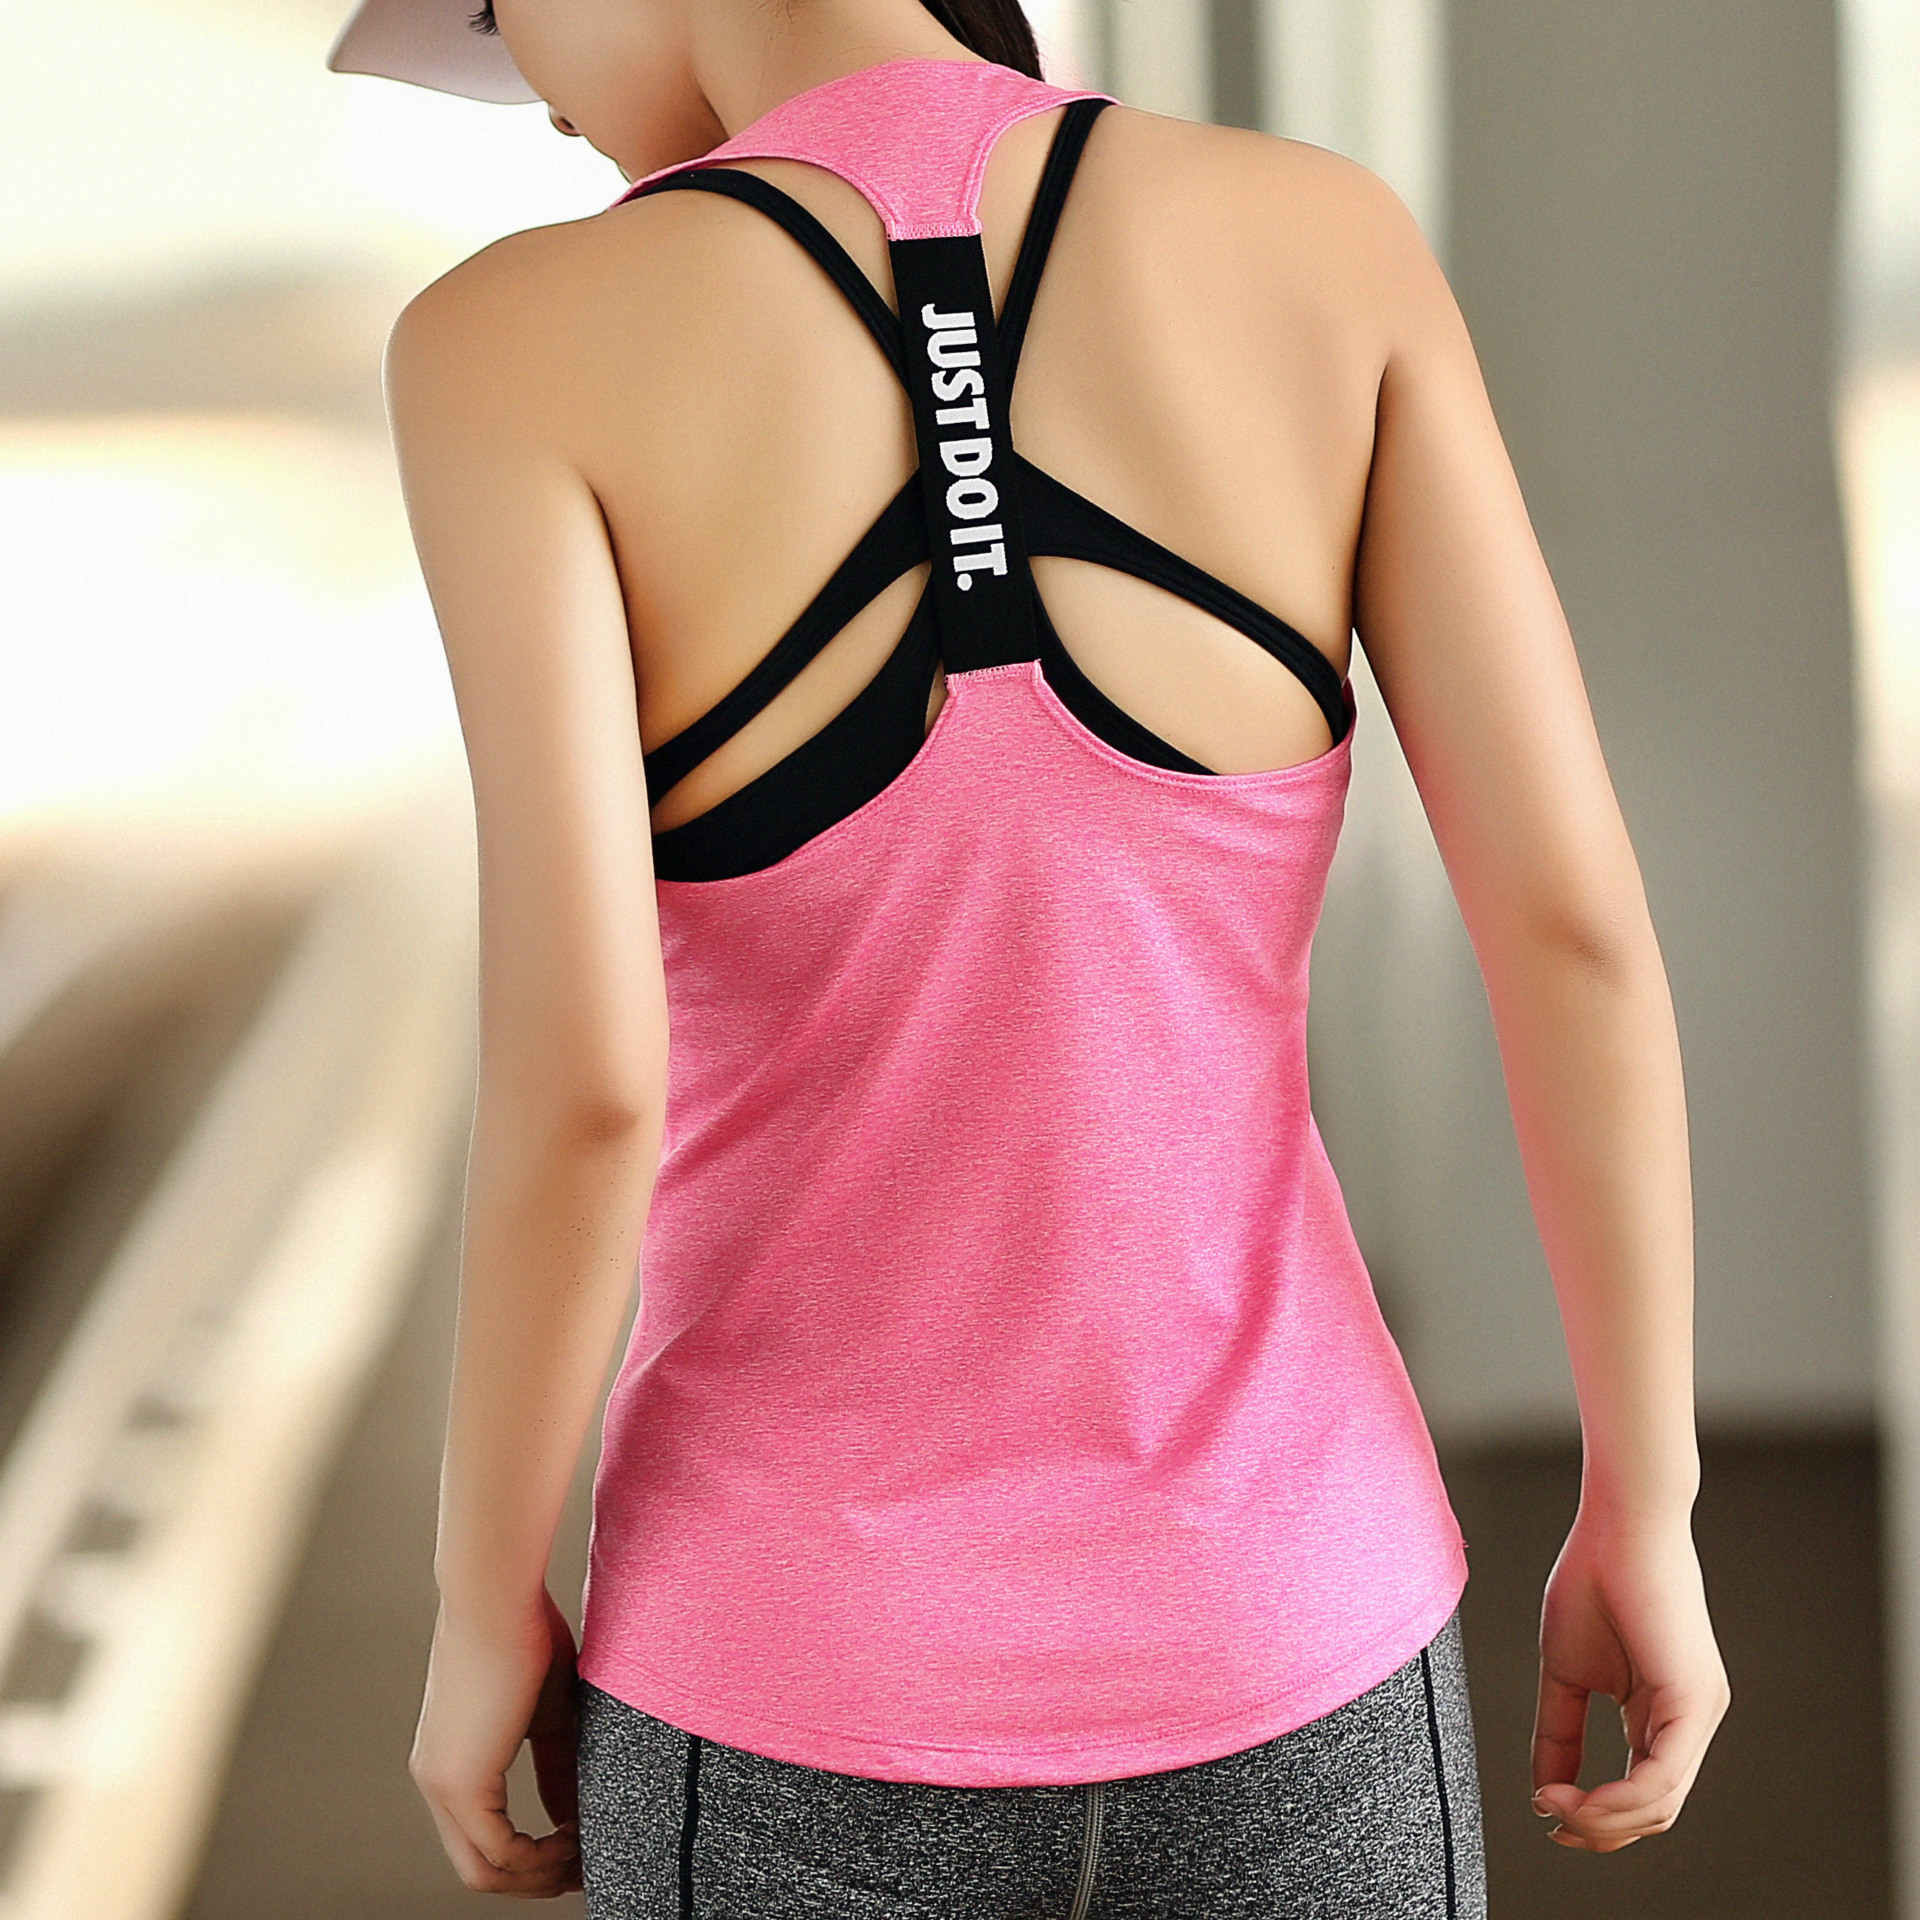 e1bb9d03990d5 Women Workout Shirts Yoga Top Quick Dry Gym Sleeveless Yoga Shirt Sports  Wear for Women Jersey Mujer Fitness Active Wear Tank